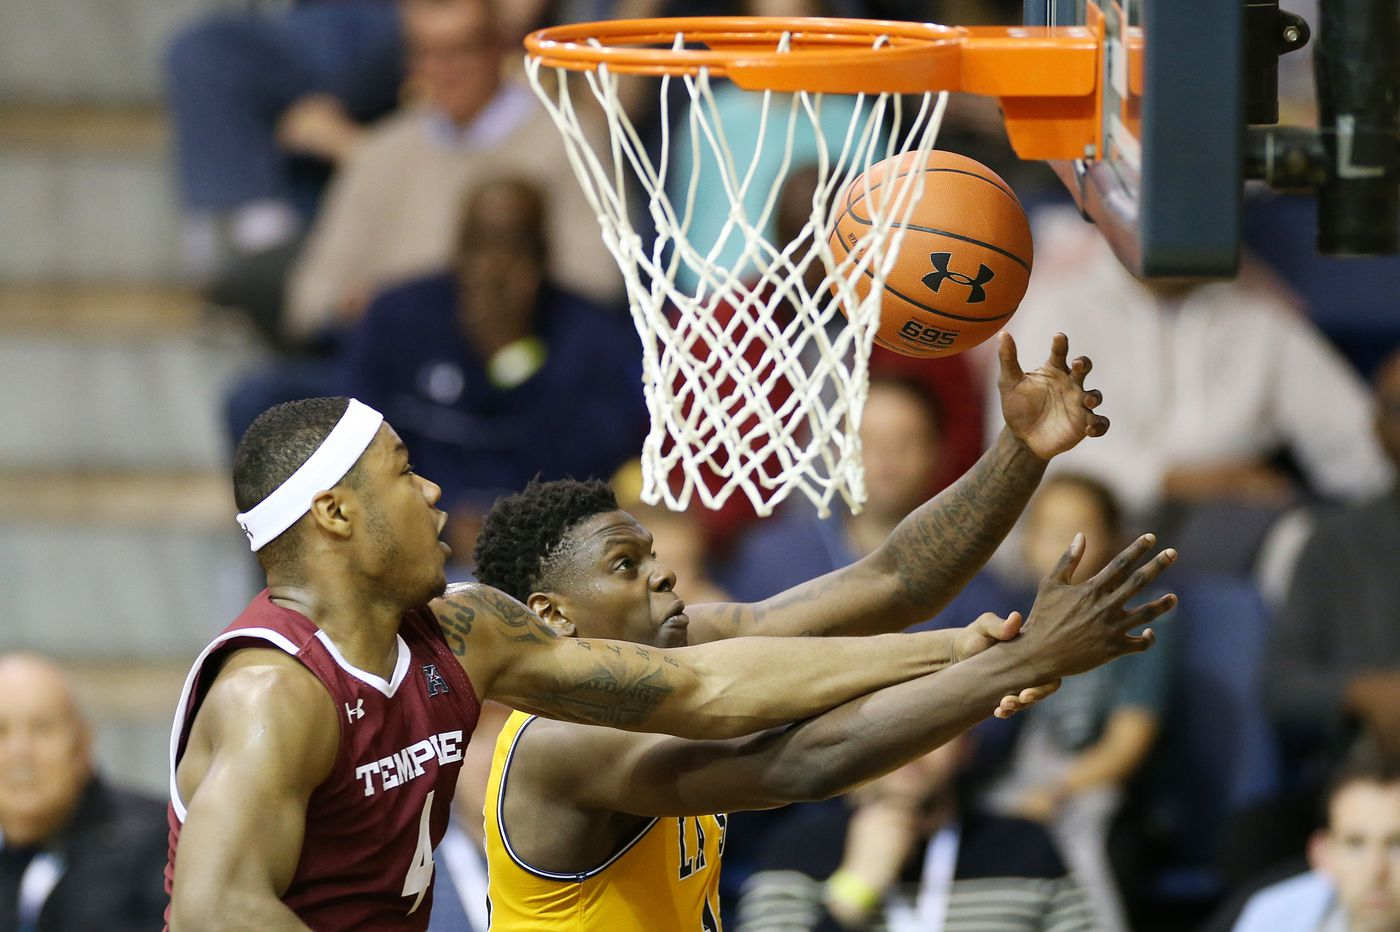 Temple 70, La Salle 65: Stats, highlights, and reaction from the Owls' win